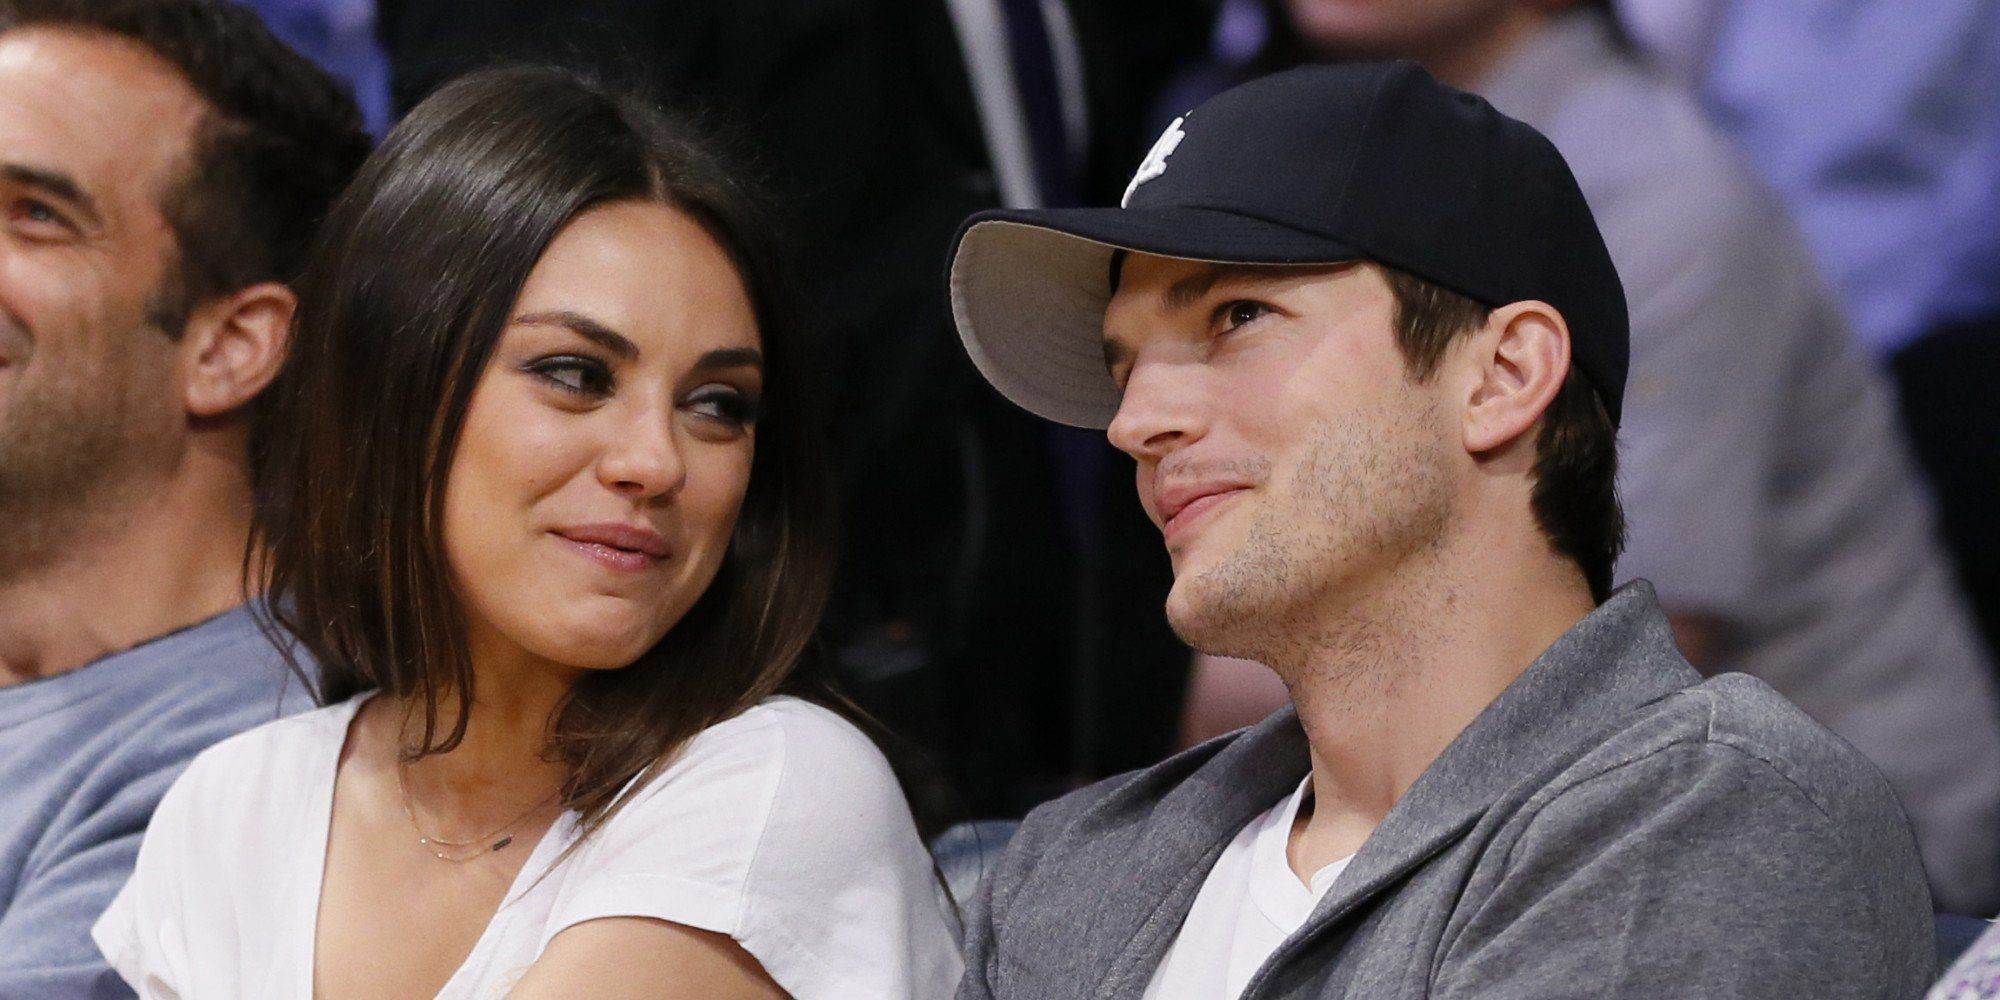 Ashton Kutcher and Mila Kunis retorted to tabloid magazine which stated about their impending divorce